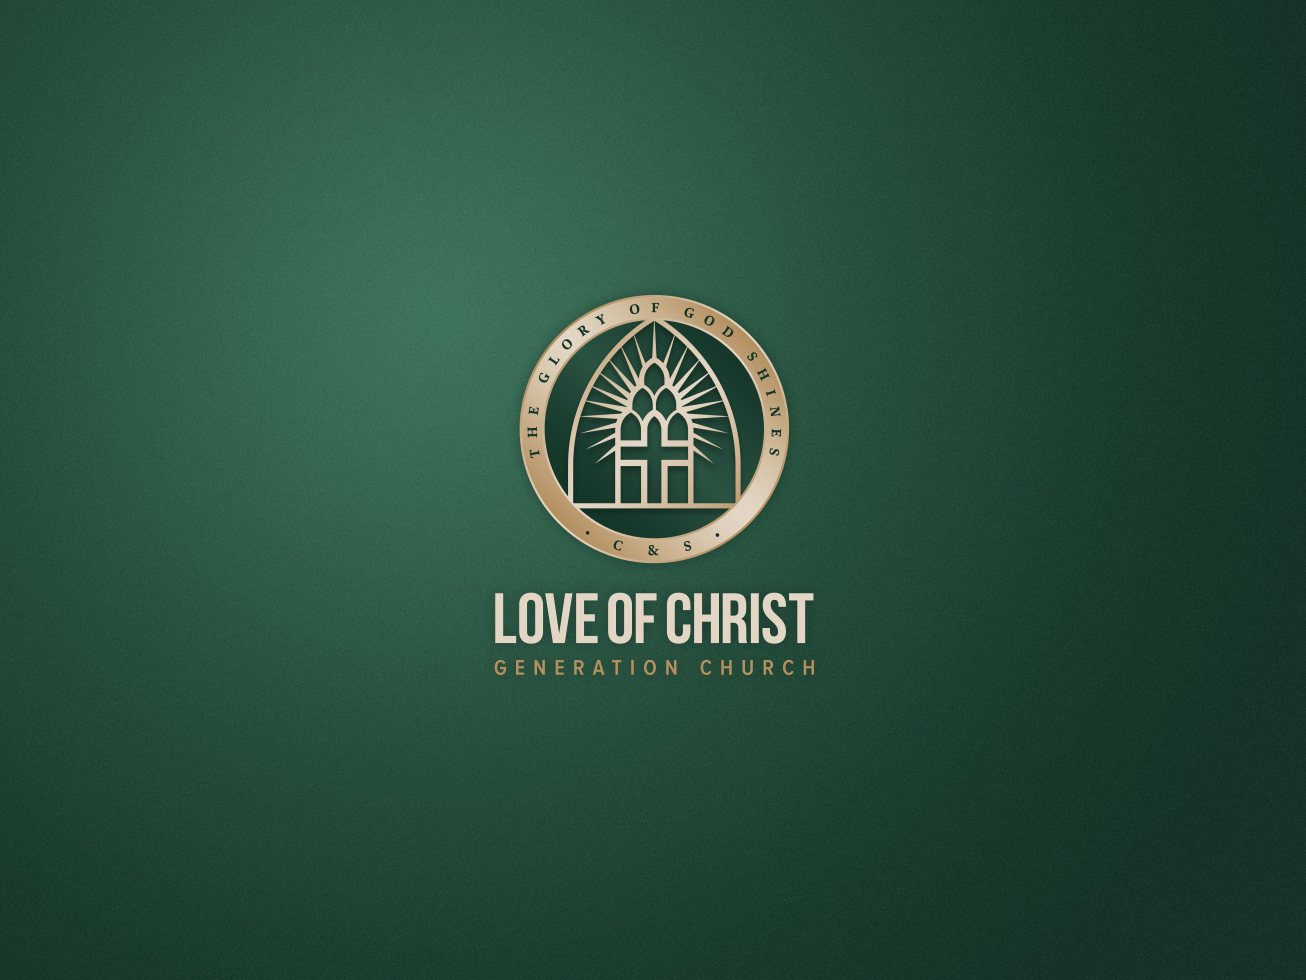 Love of christ church with all seal compact